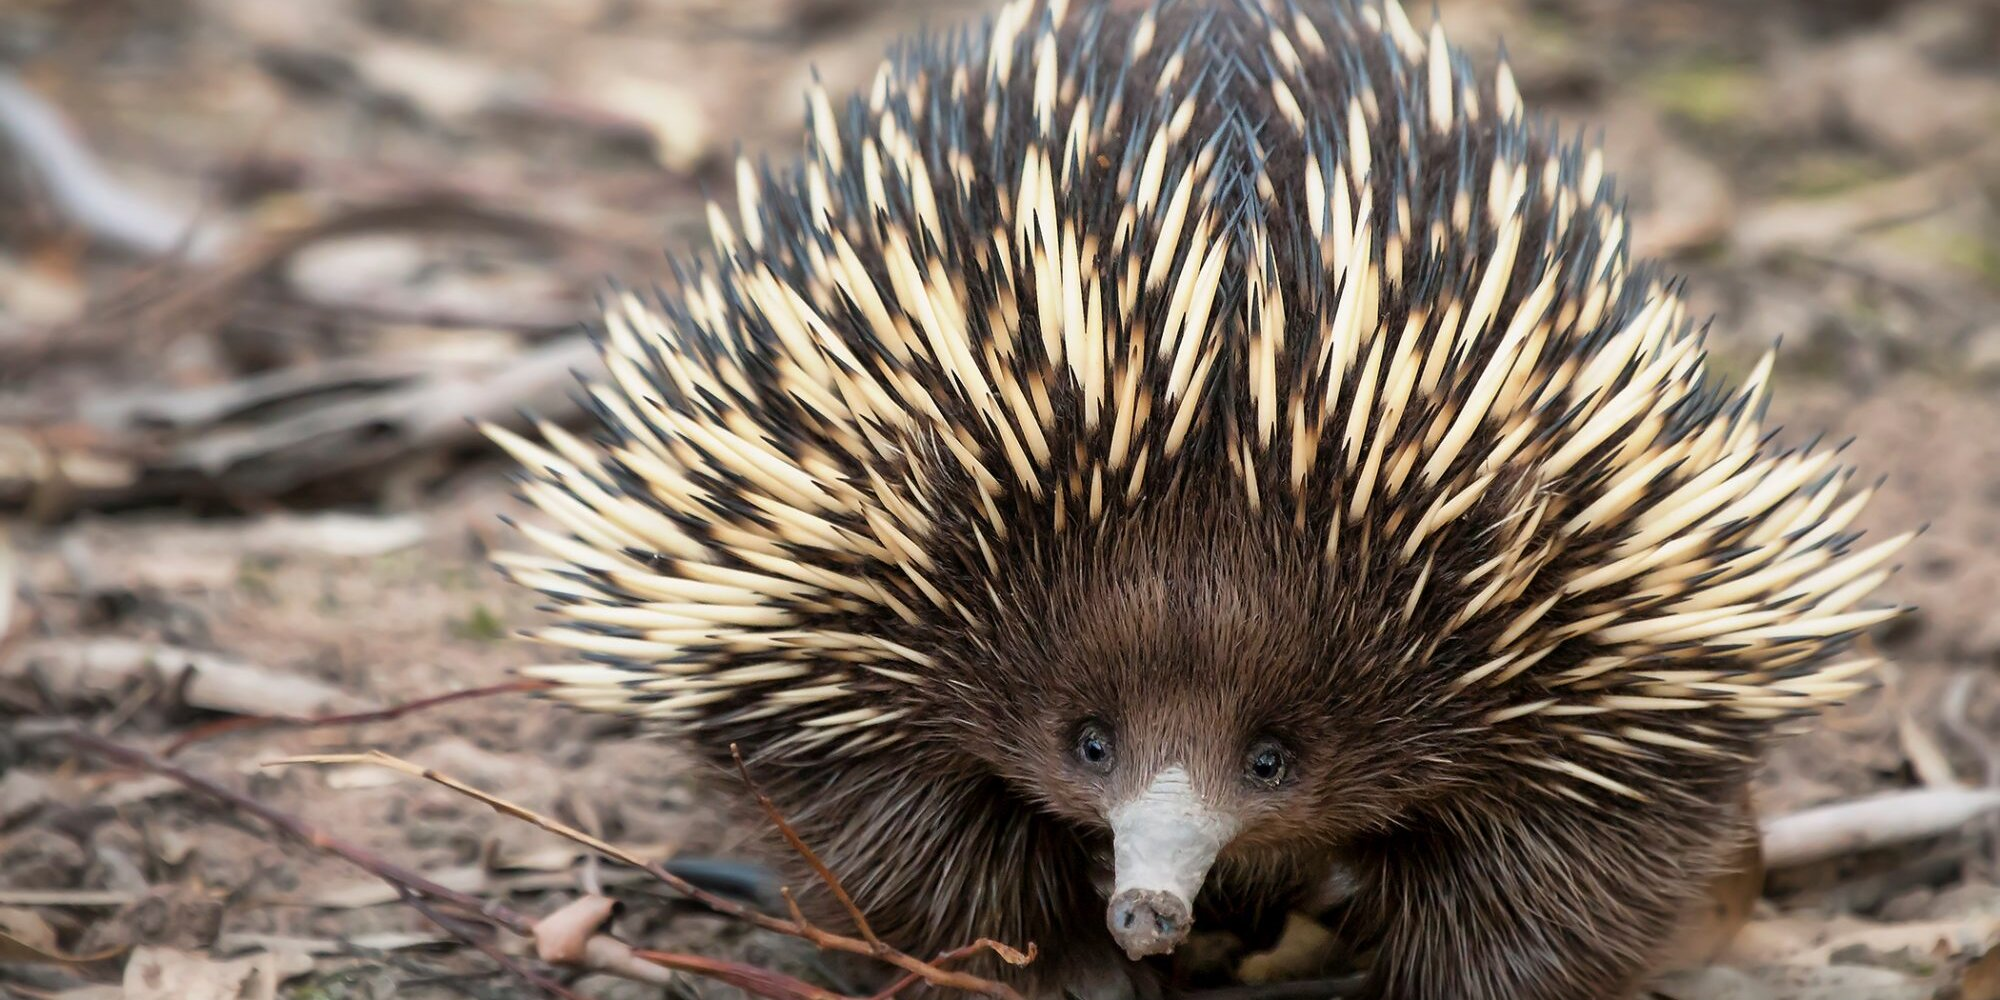 Adorable Baby Echidna Makes First Public Appearance at Sydney Zoo